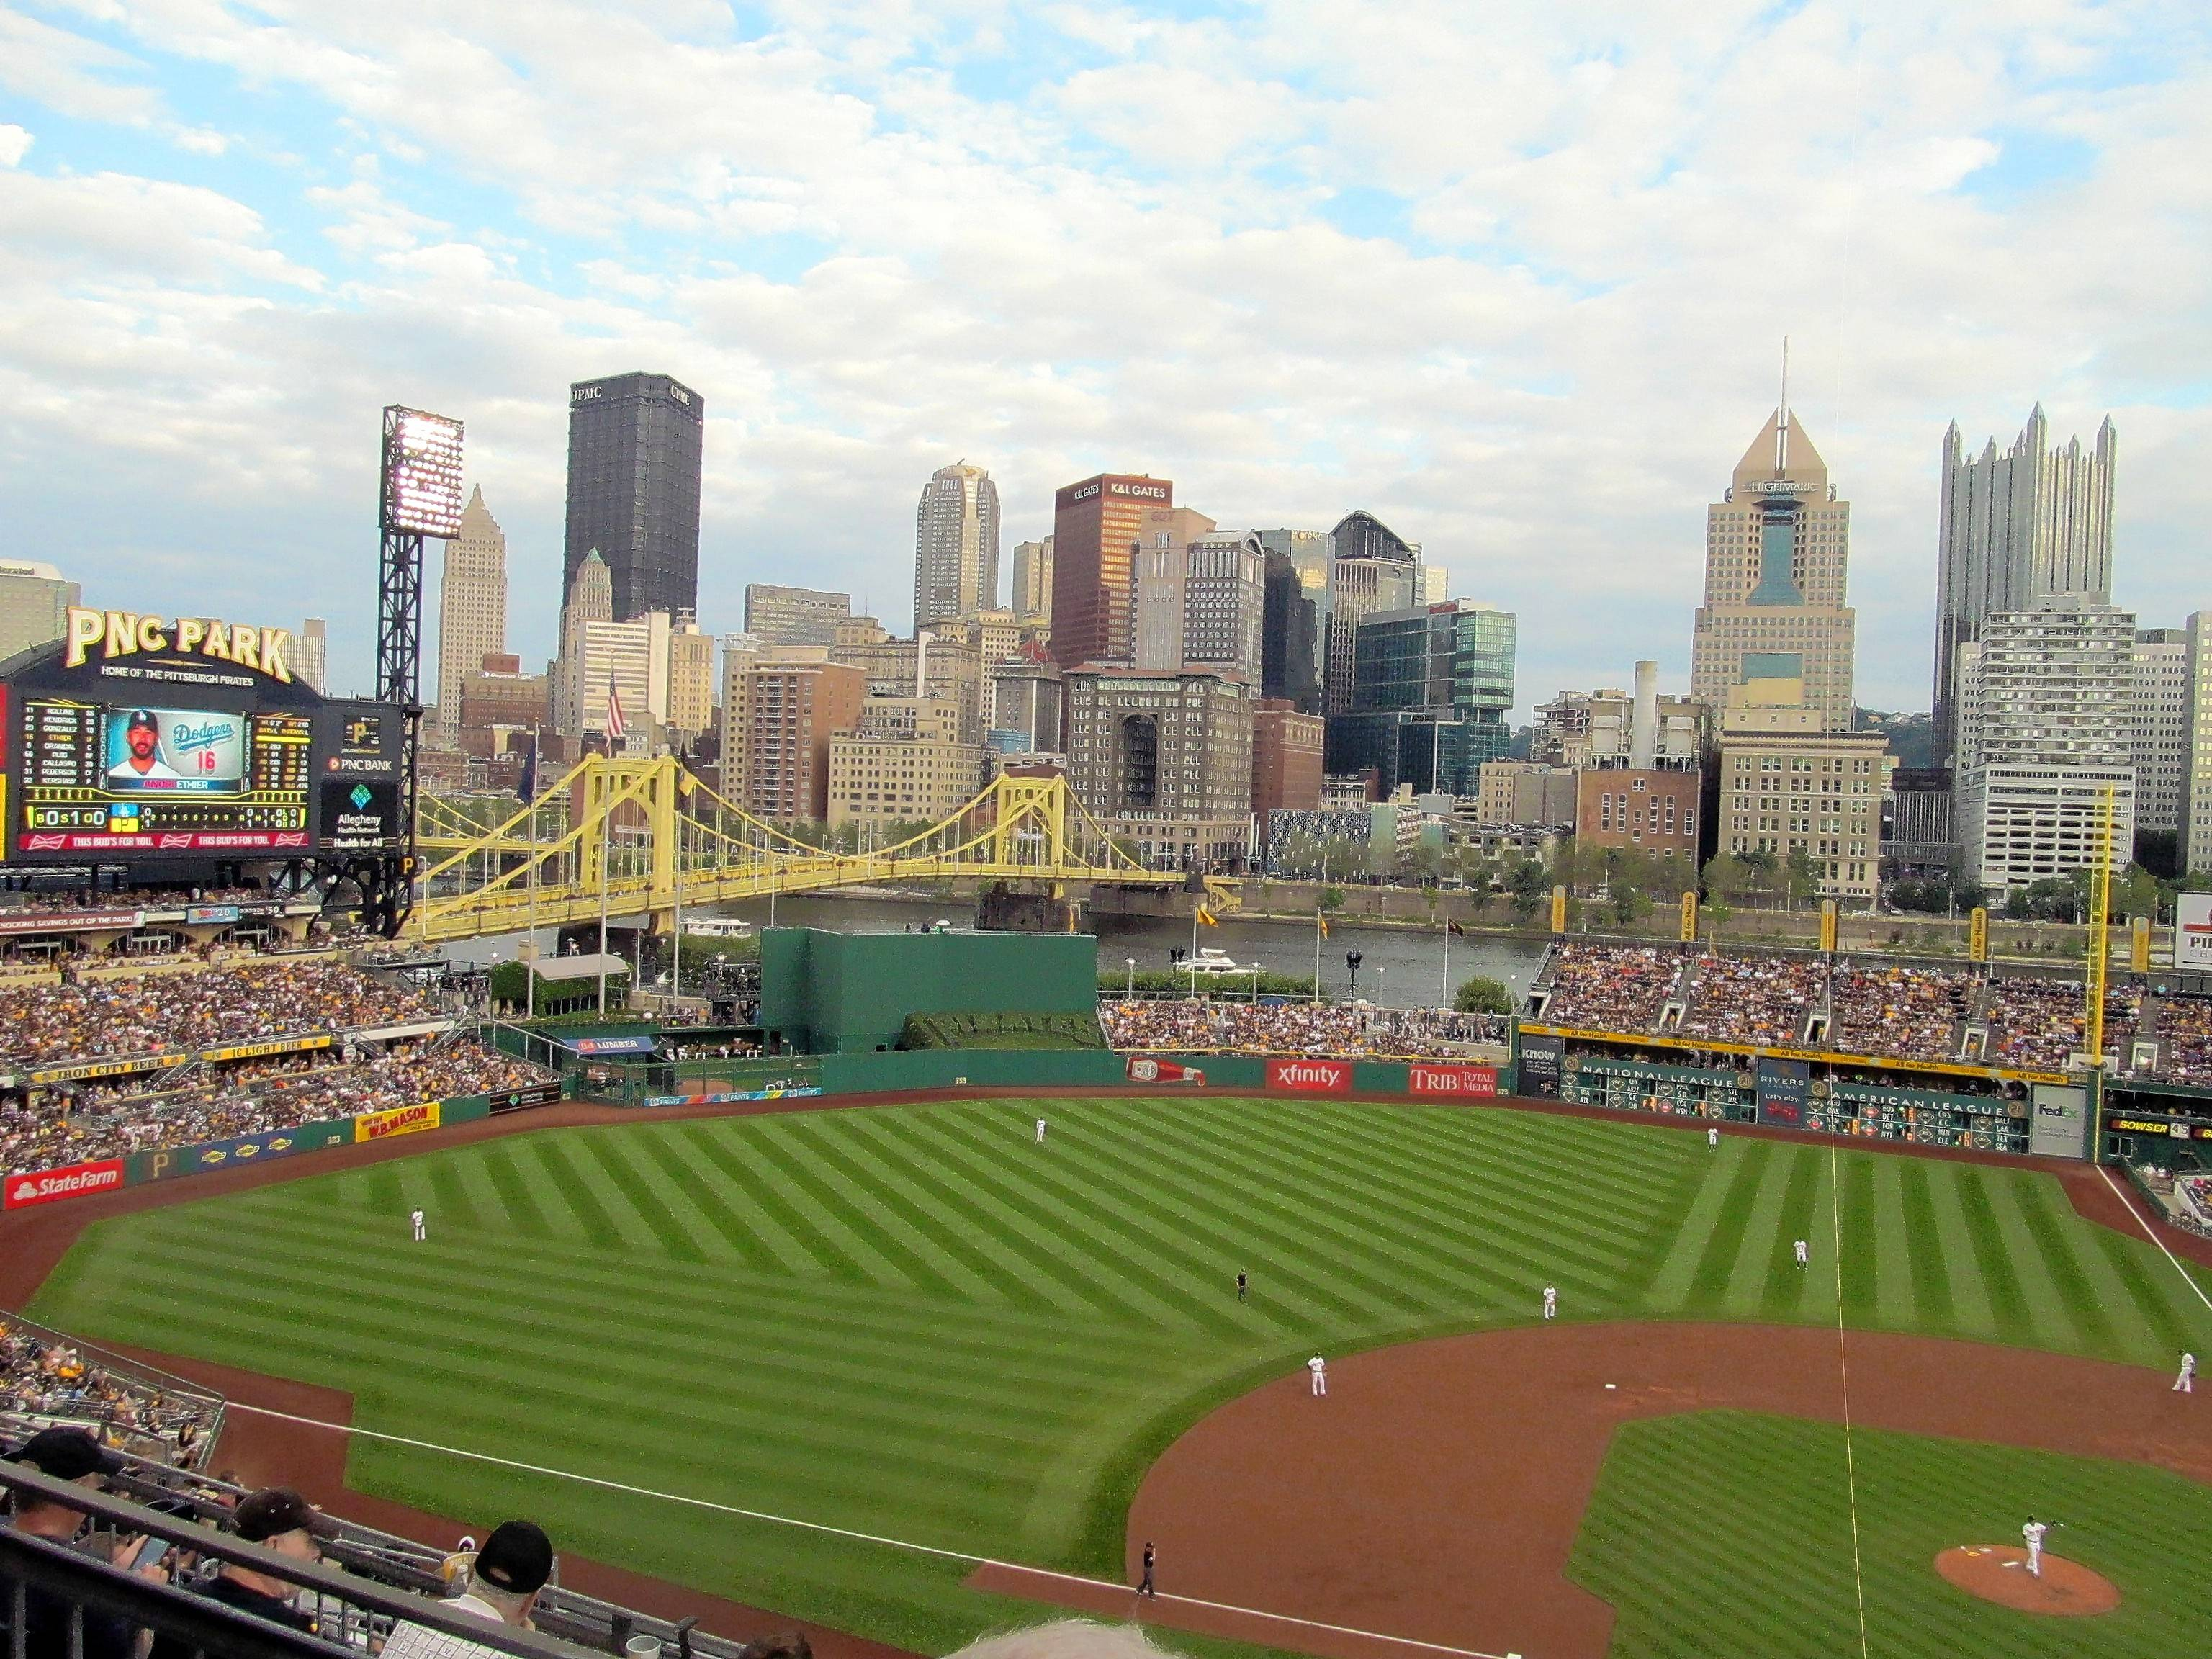 PNC Park is just one of many lookout points from which to get a great view of the fun that is Pittsburgh. Seen here from the upper deck along the third-base line, more of the skyline comes into view as you climb higher into the stands.